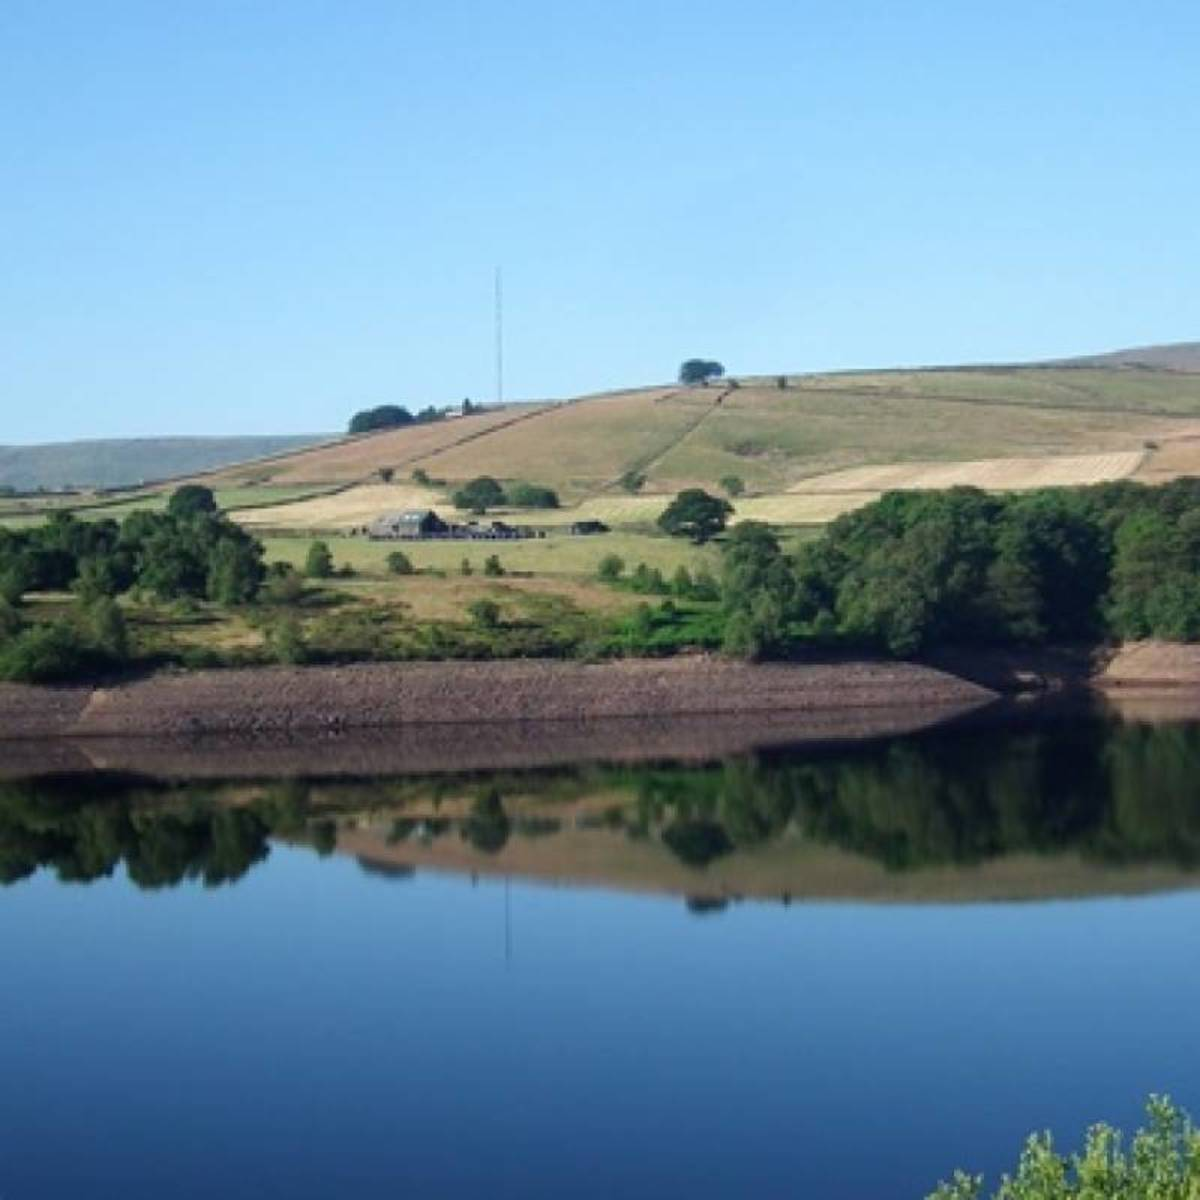 Digley Reservoir, scene of various capers during the 'Summer Wine' series